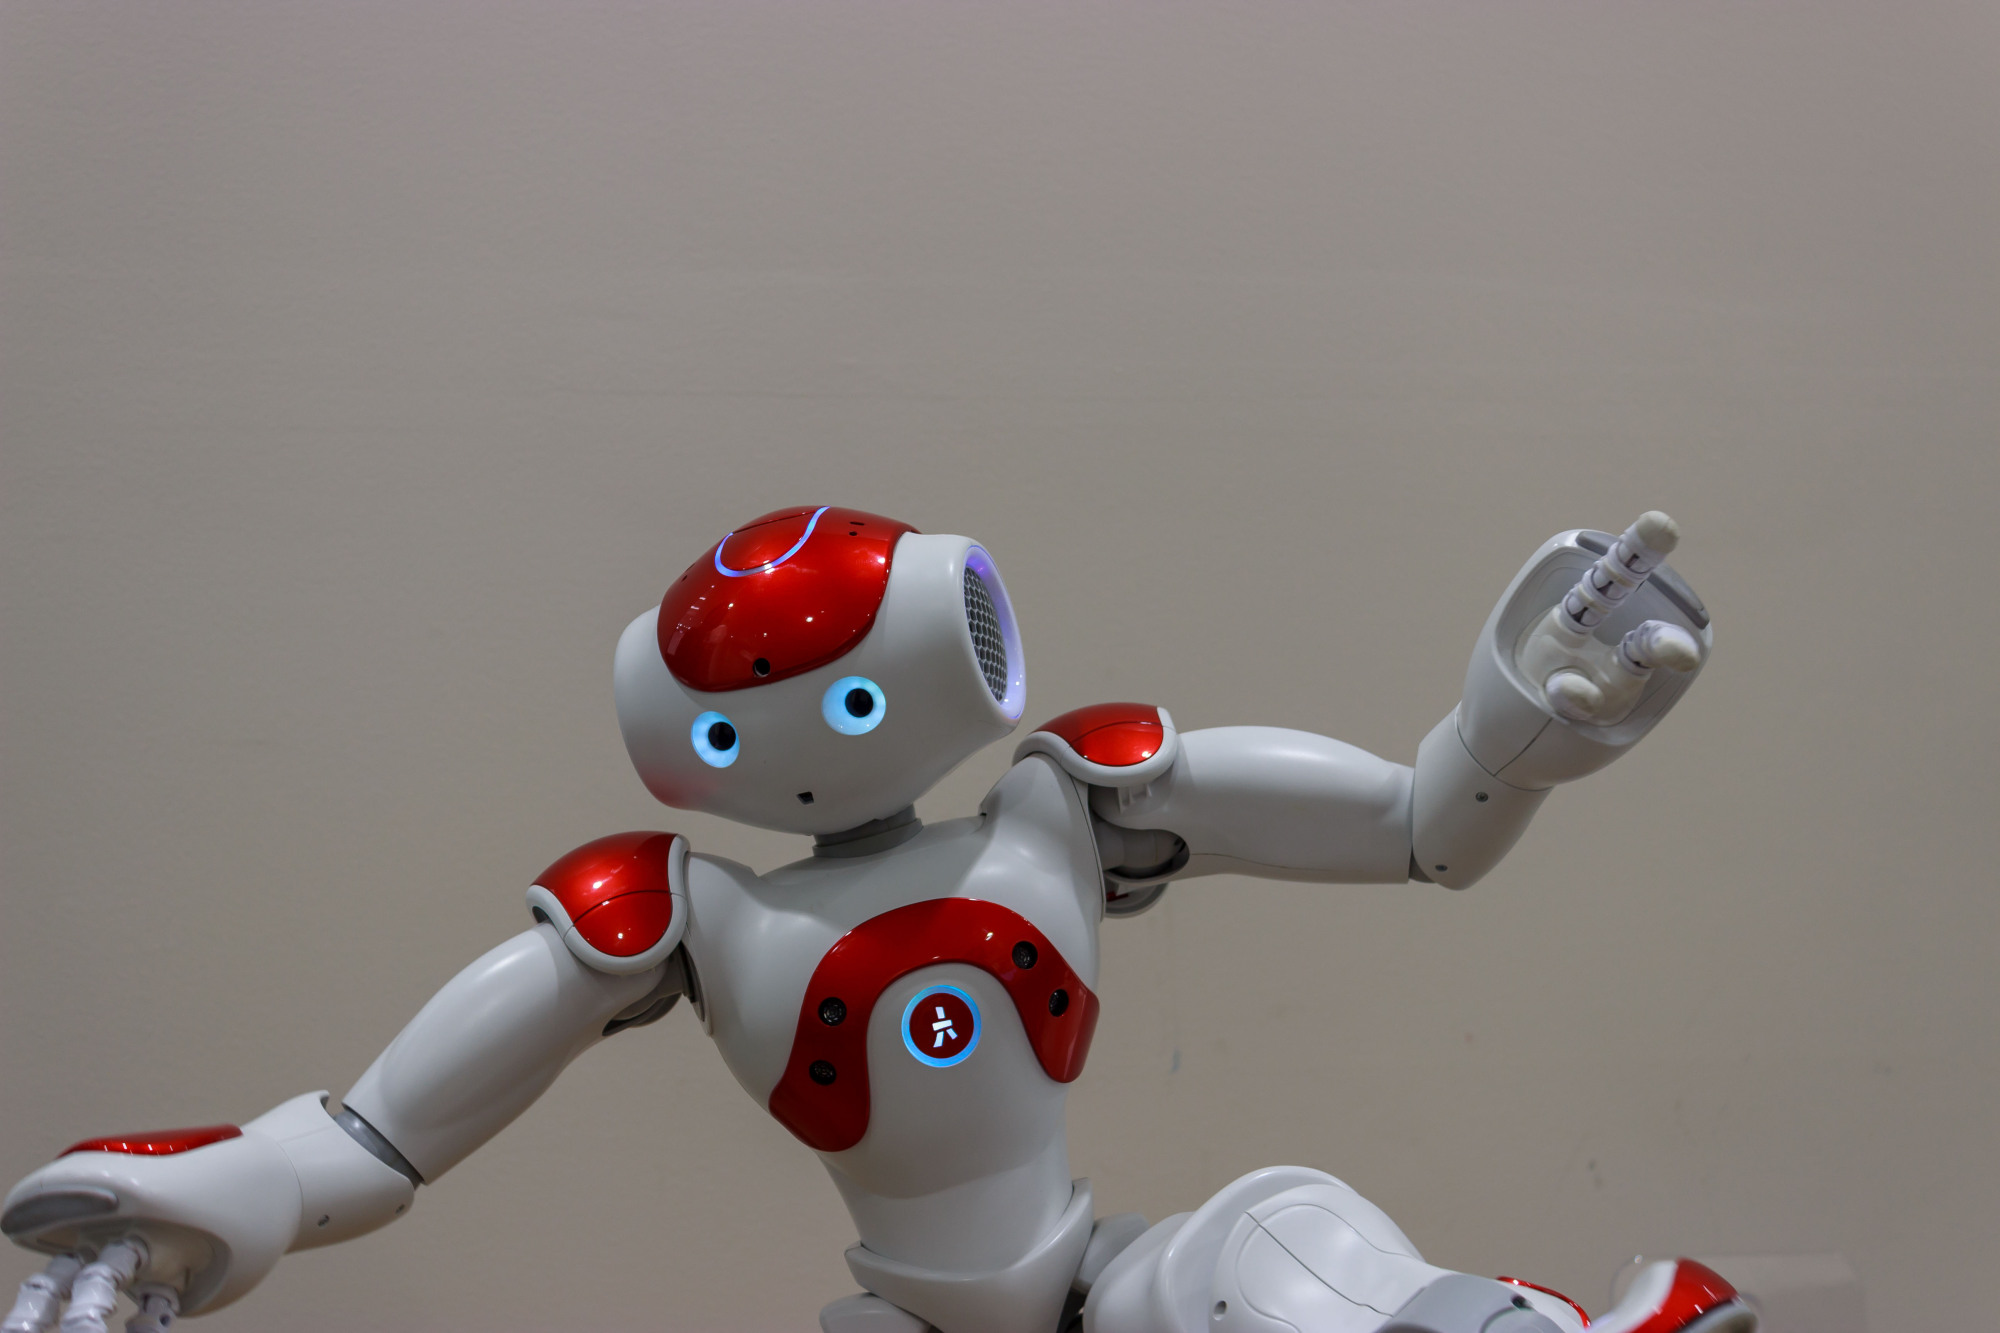 Robo-student: SoftBank Robotics' Nao is one of the types of robot observed by Fumihide Tanaka for his review of the effect of Care-Receiving Robots in the classroom. | GETTY IMAGES